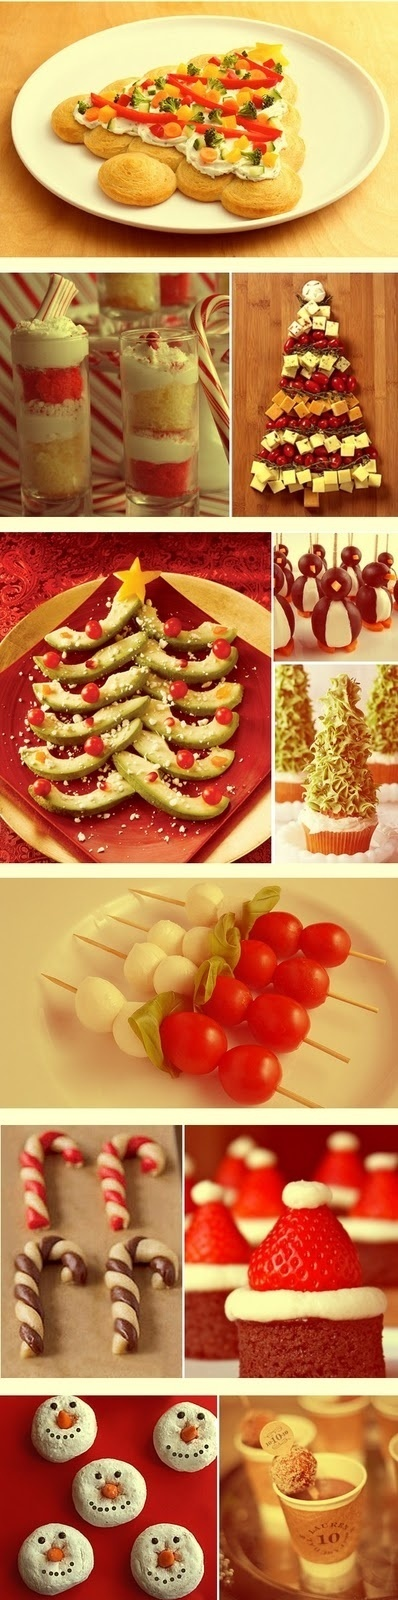 Tons of Great Ideas in Just One Pin!  Pin it to Save it!!  #foodiefiles #christmas